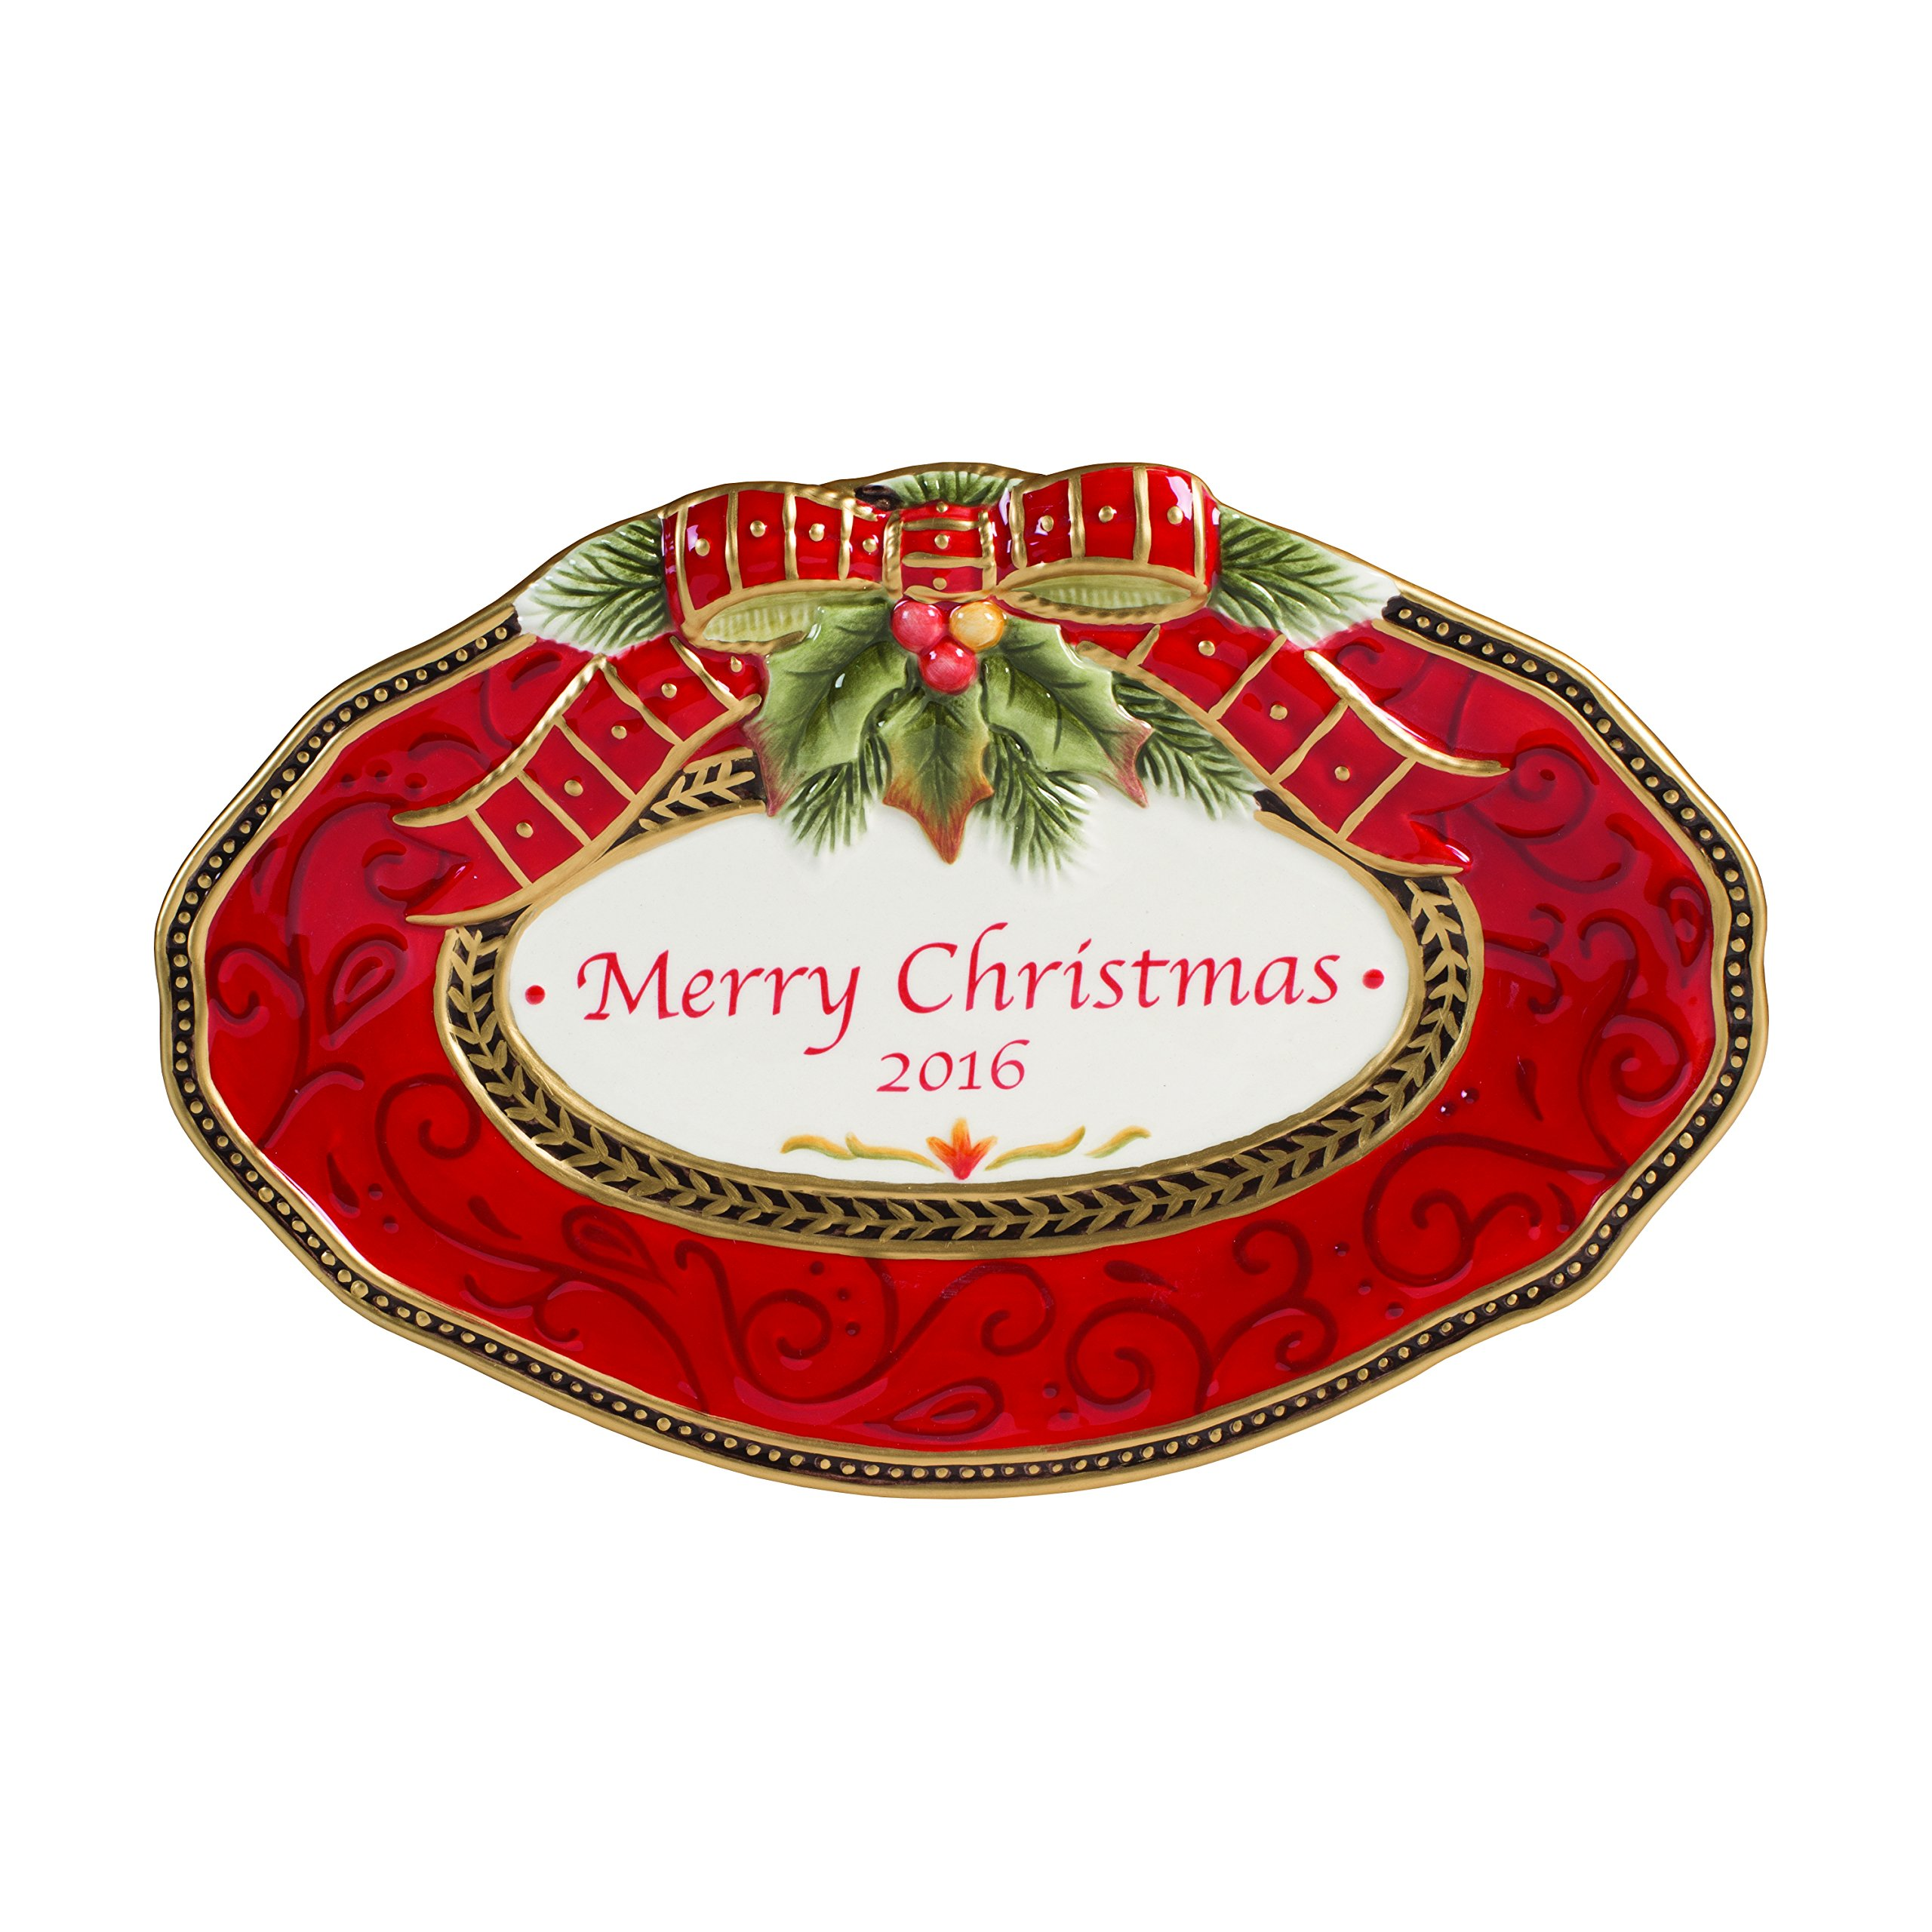 Fitz and Floyd Damask Holiday Collection 2016 Collector's Plate, Vintage Red & Gold